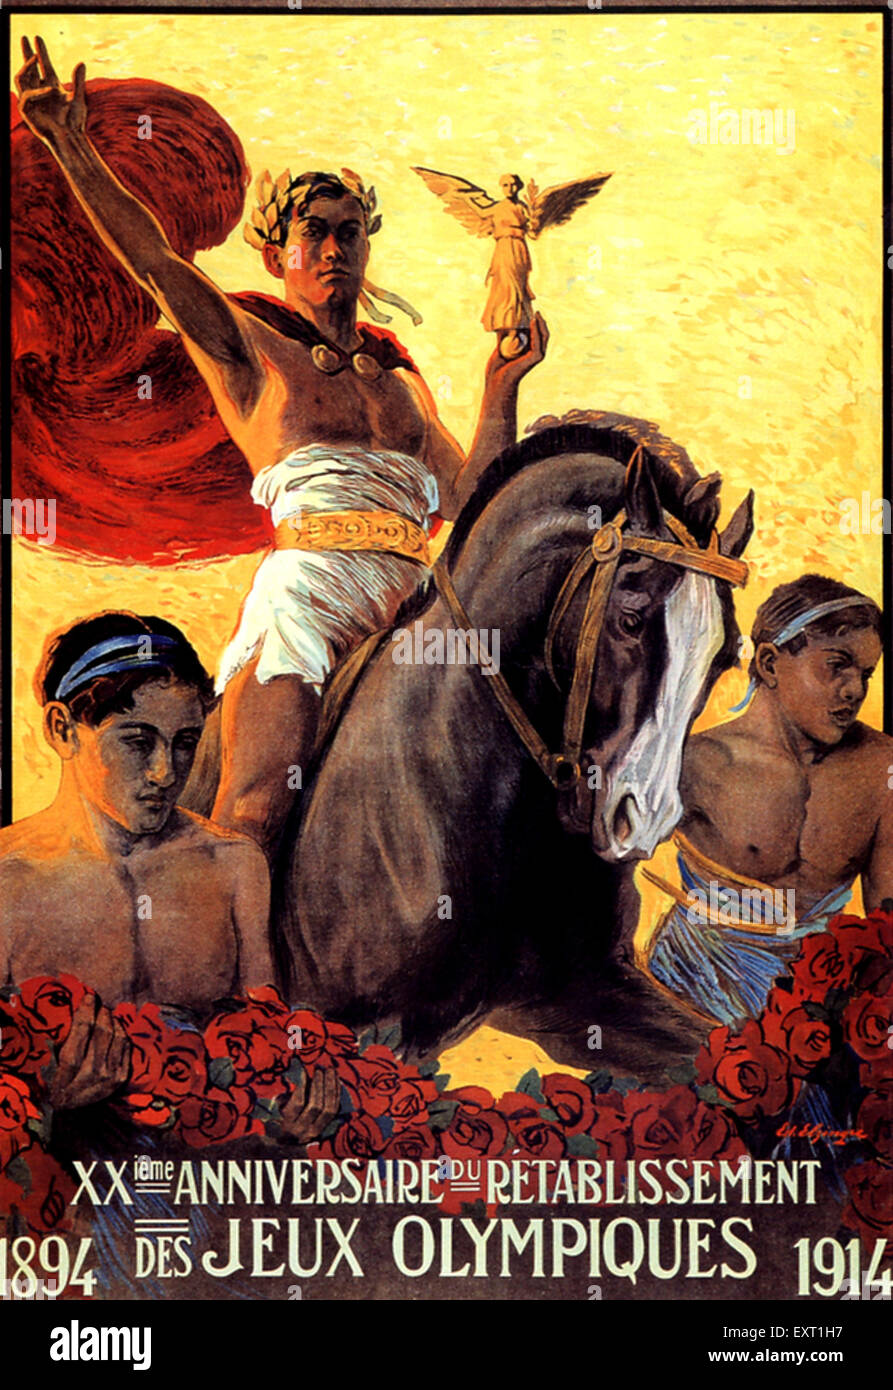 1910s France Olympic Games Poster - Stock Image